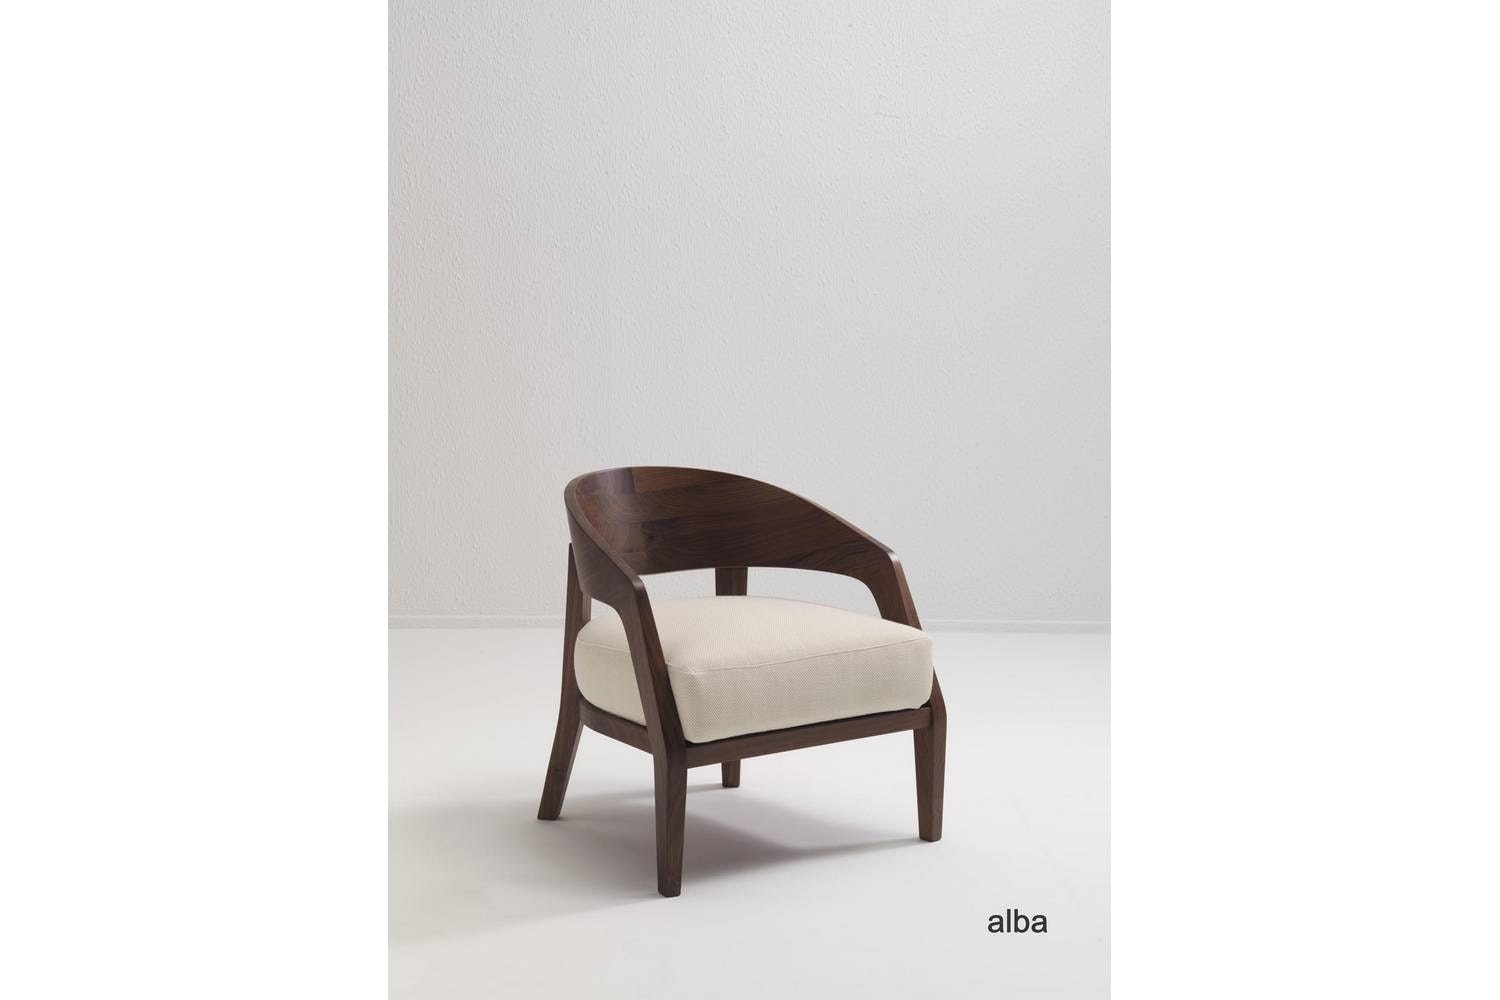 Alba Armchair by M. Walraven for Porada